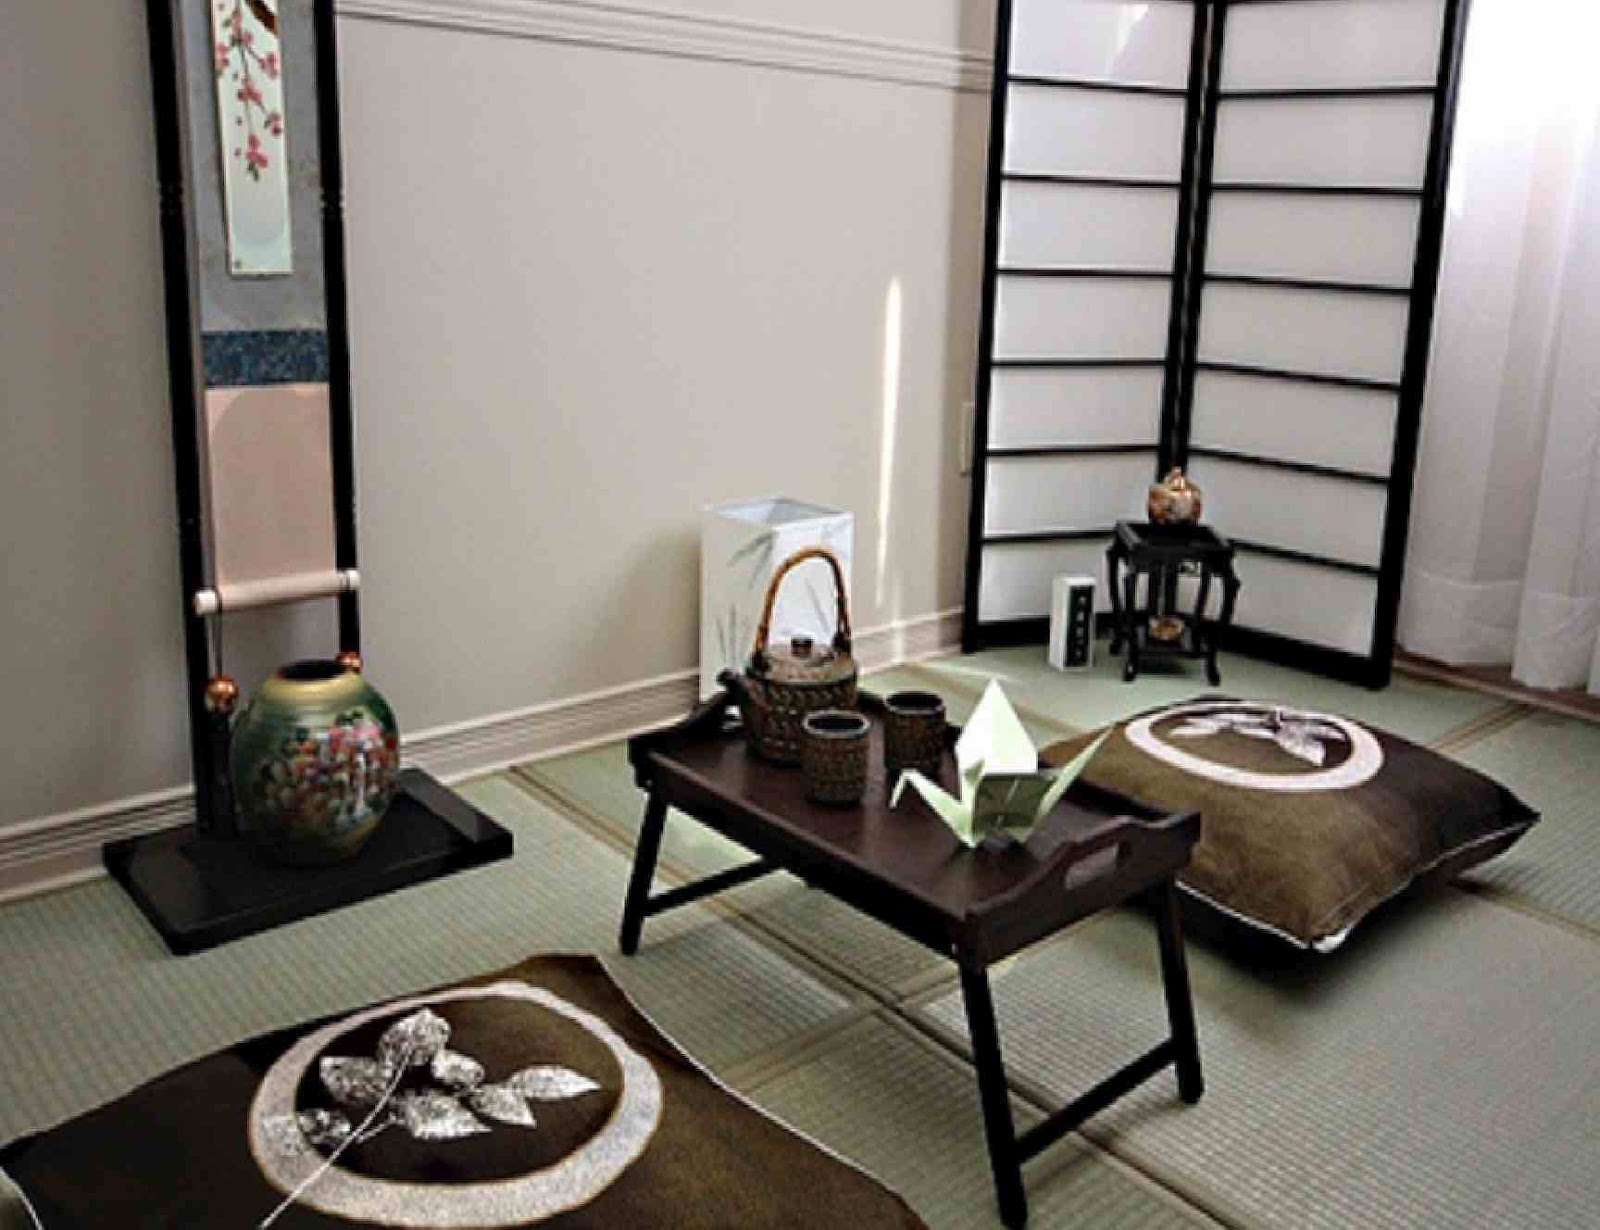 Japanese interior design interior home design for Decoration japonaise